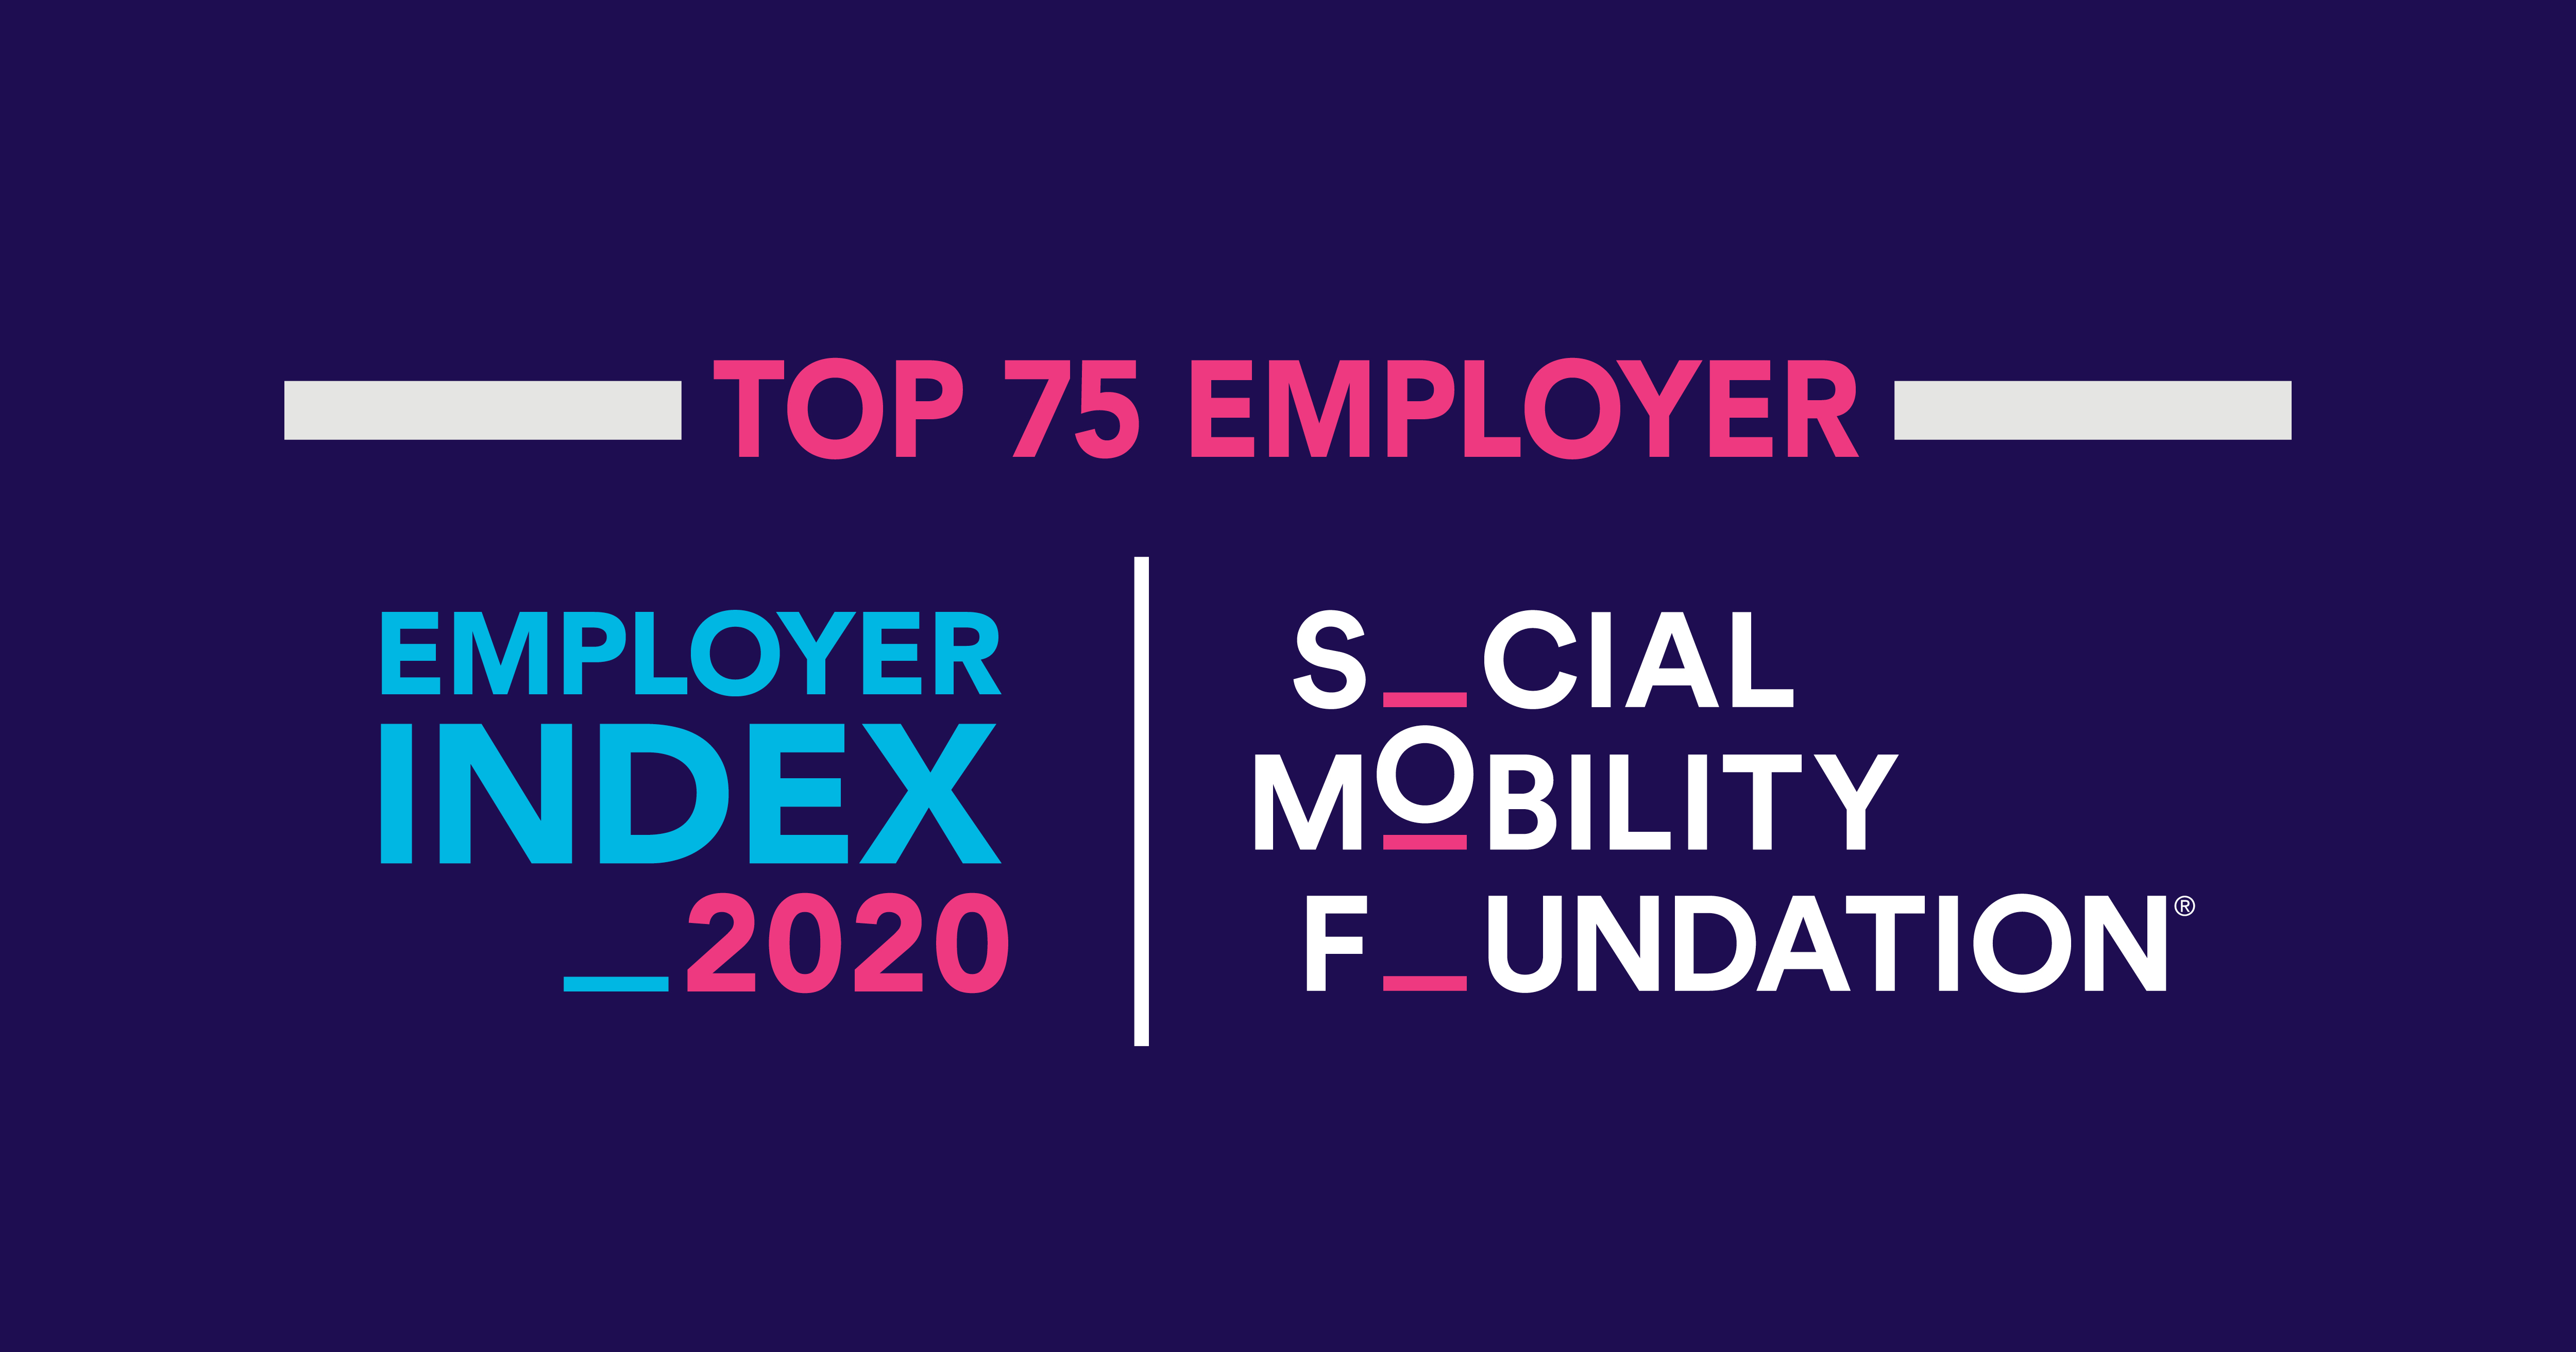 Mears ranked as a Top 75 employer in 2020 for Social Mobility